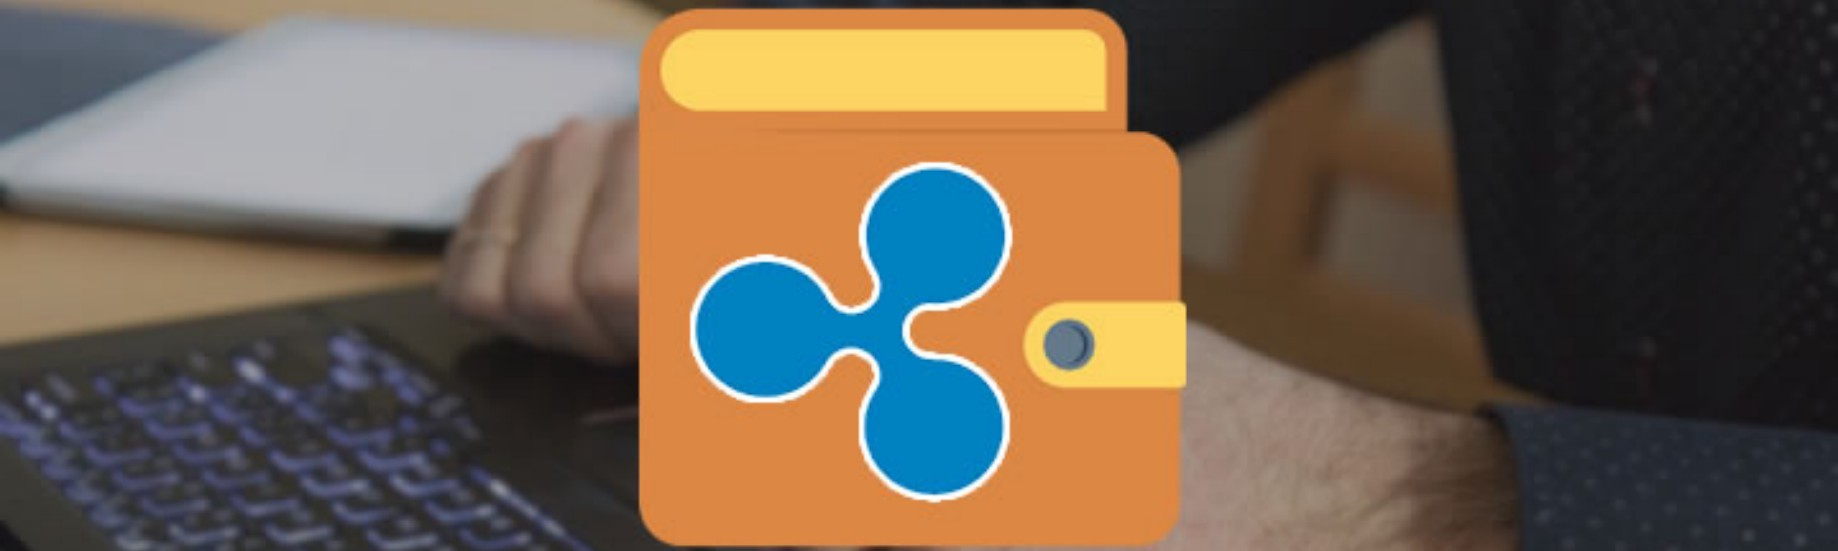 Ripple (XRP) Wallet — Best Wallet For Ripple | by Harsh Agrawal |  CoinSutrablog | Medium